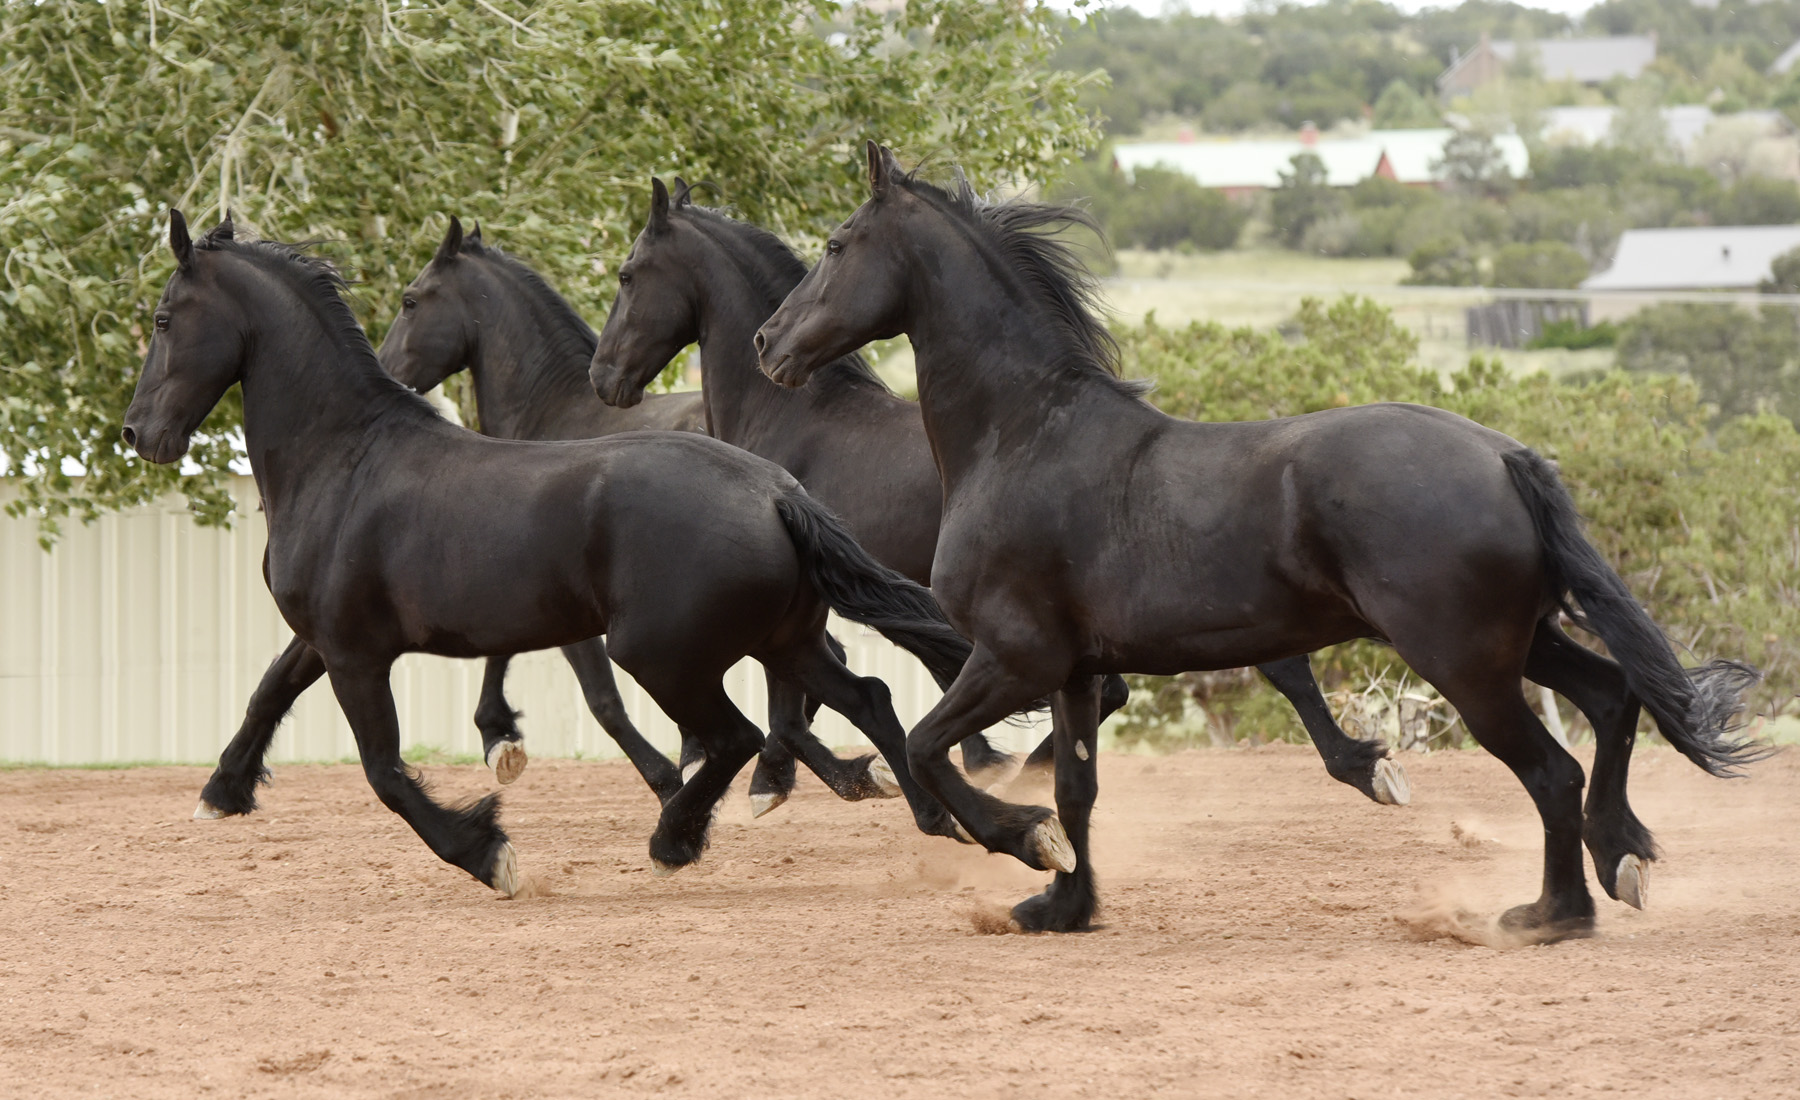 Photo feature: Proud Friesians Prins, Hannes, Gehrlof, and Willem owned by Betsy S. and Tim N. have lived at Trinity for more than 5 years. Photo Credit: Tony Stromberg